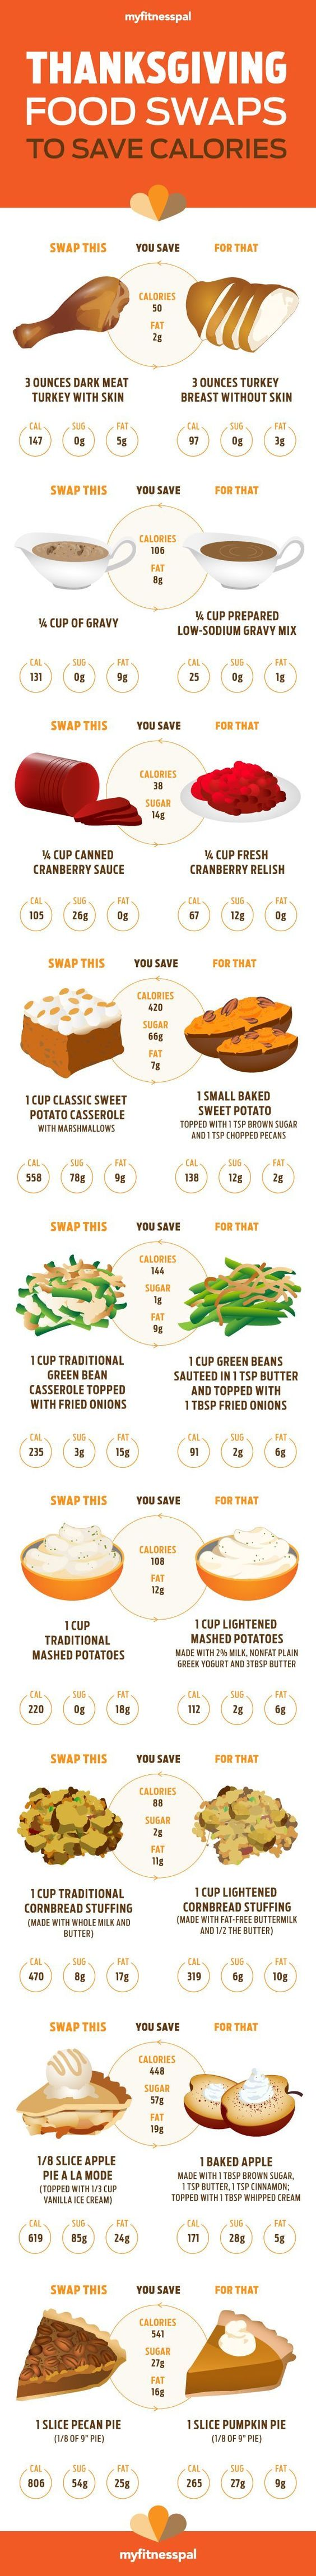 Healthy Thanksgiving day swaps!